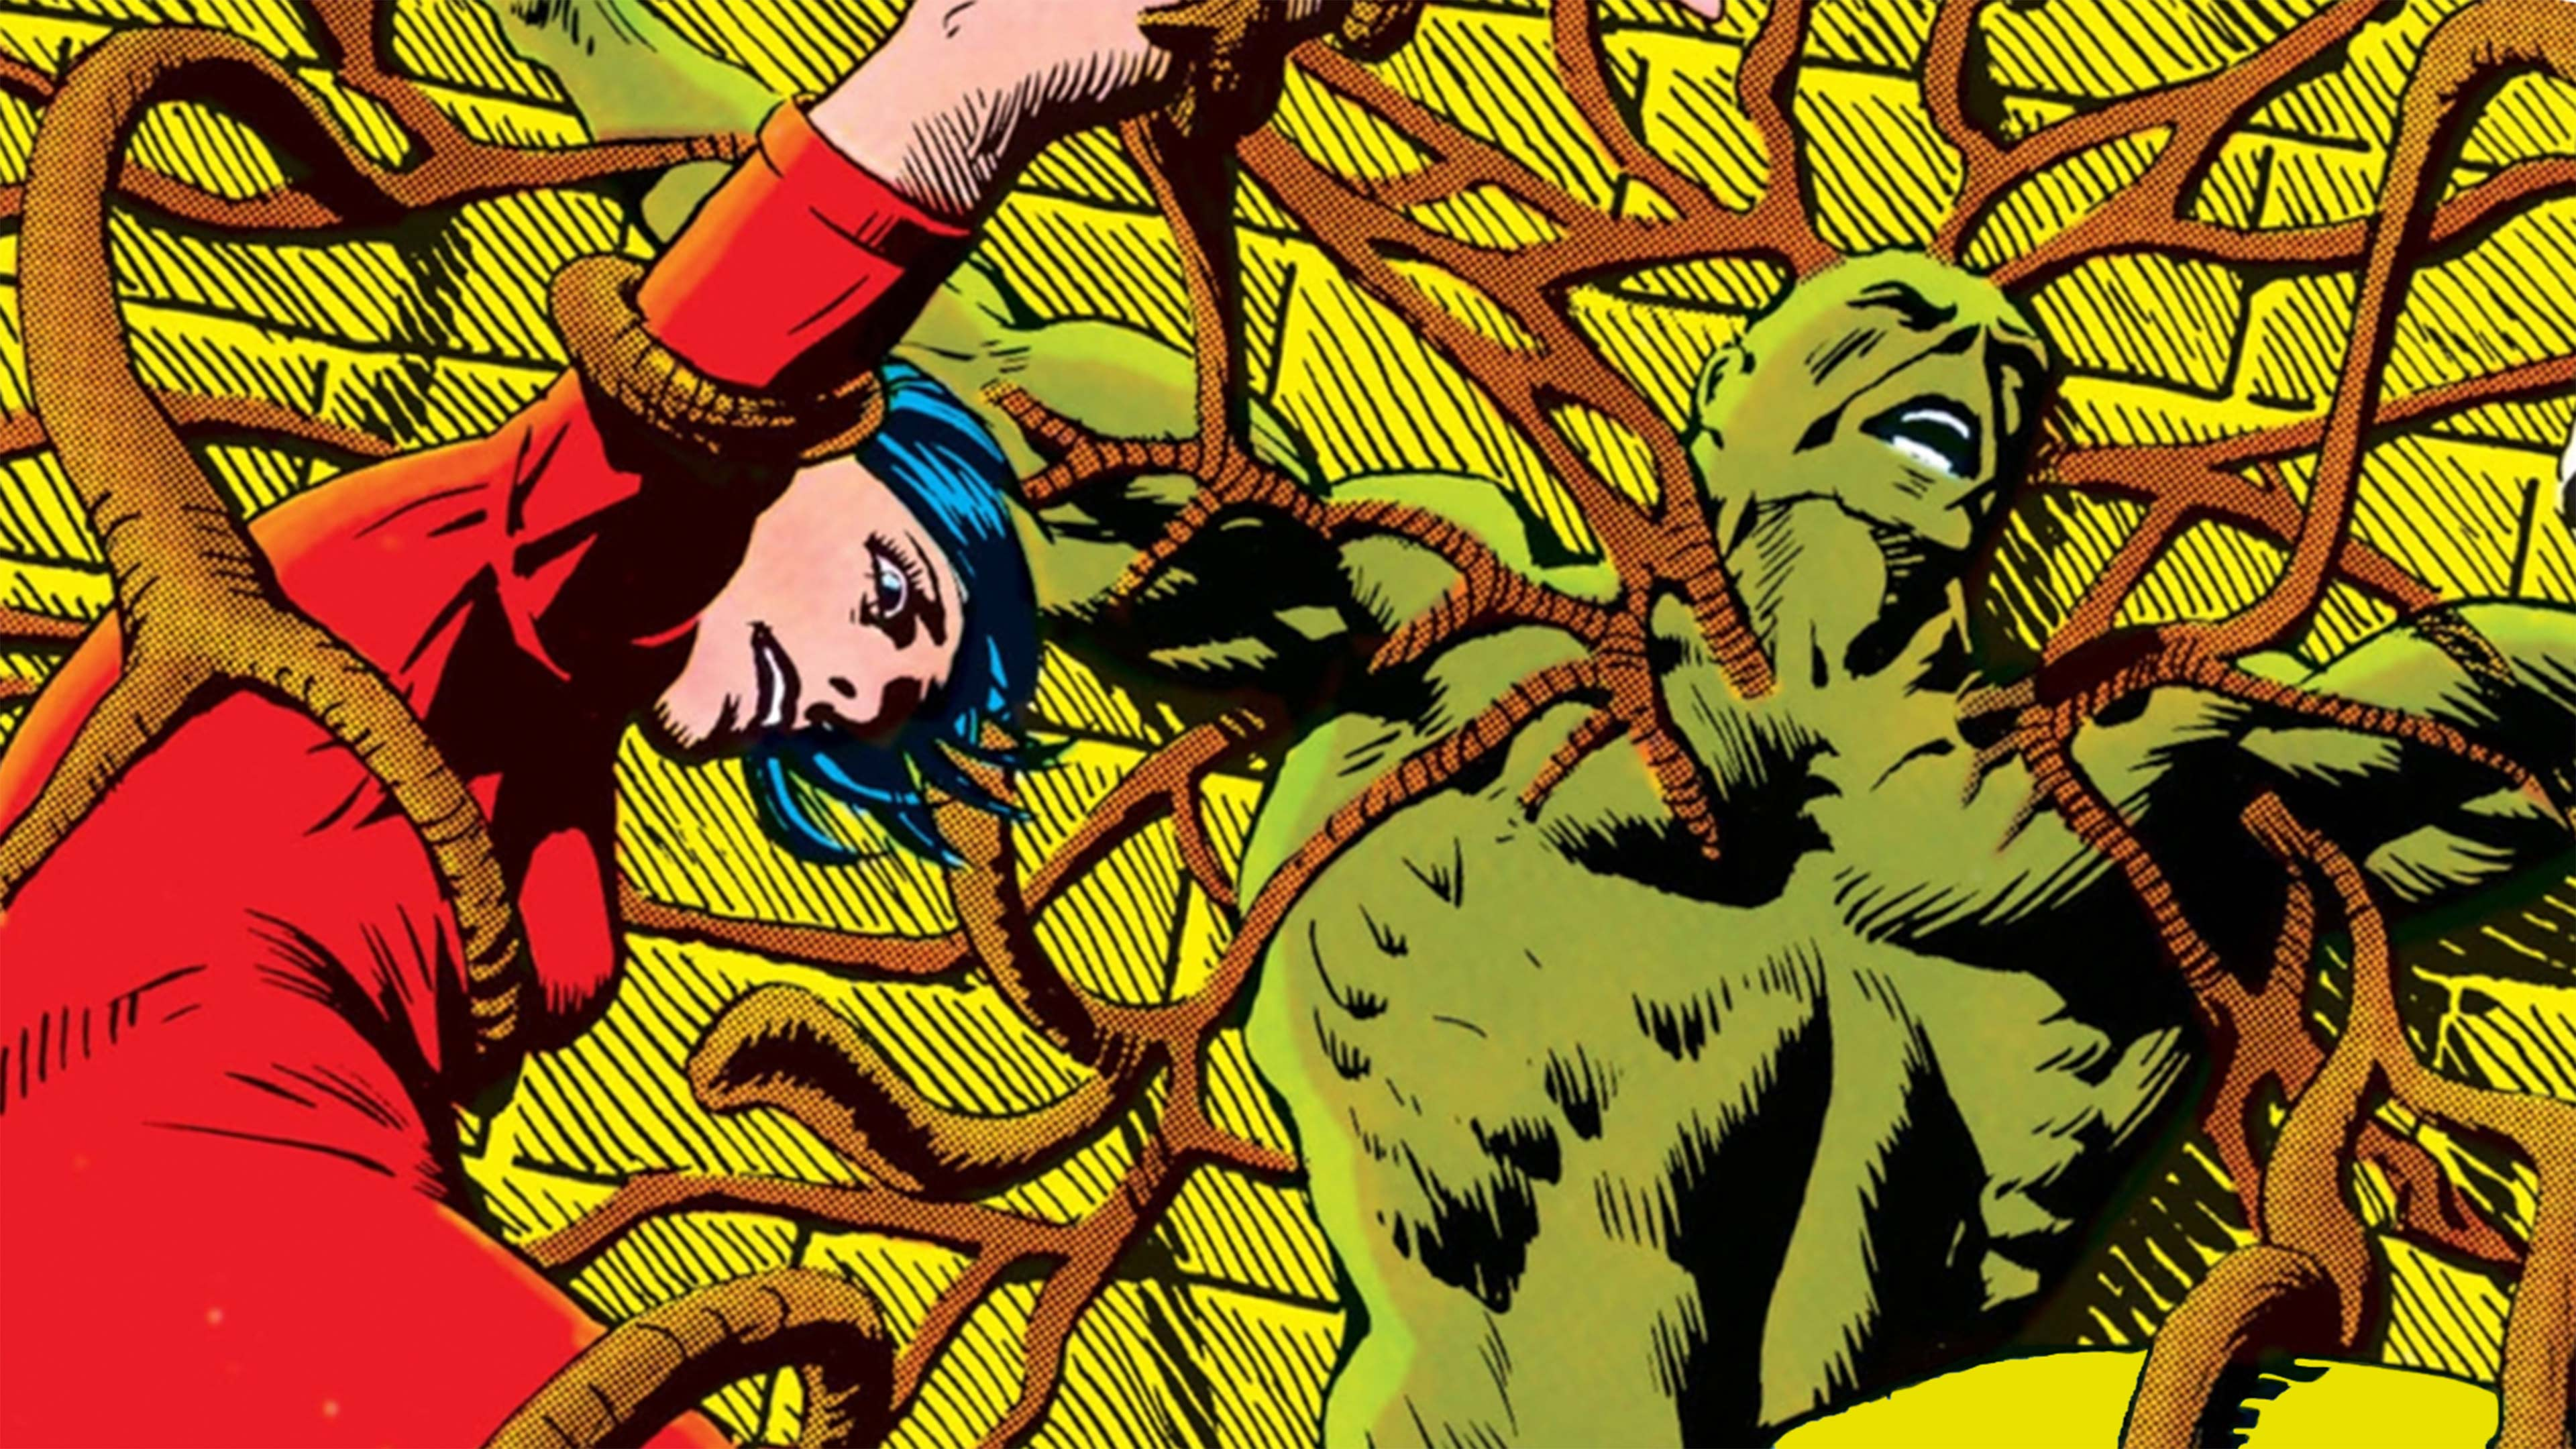 whoswhoinswampthing-news-hero-190527-v1.jpg